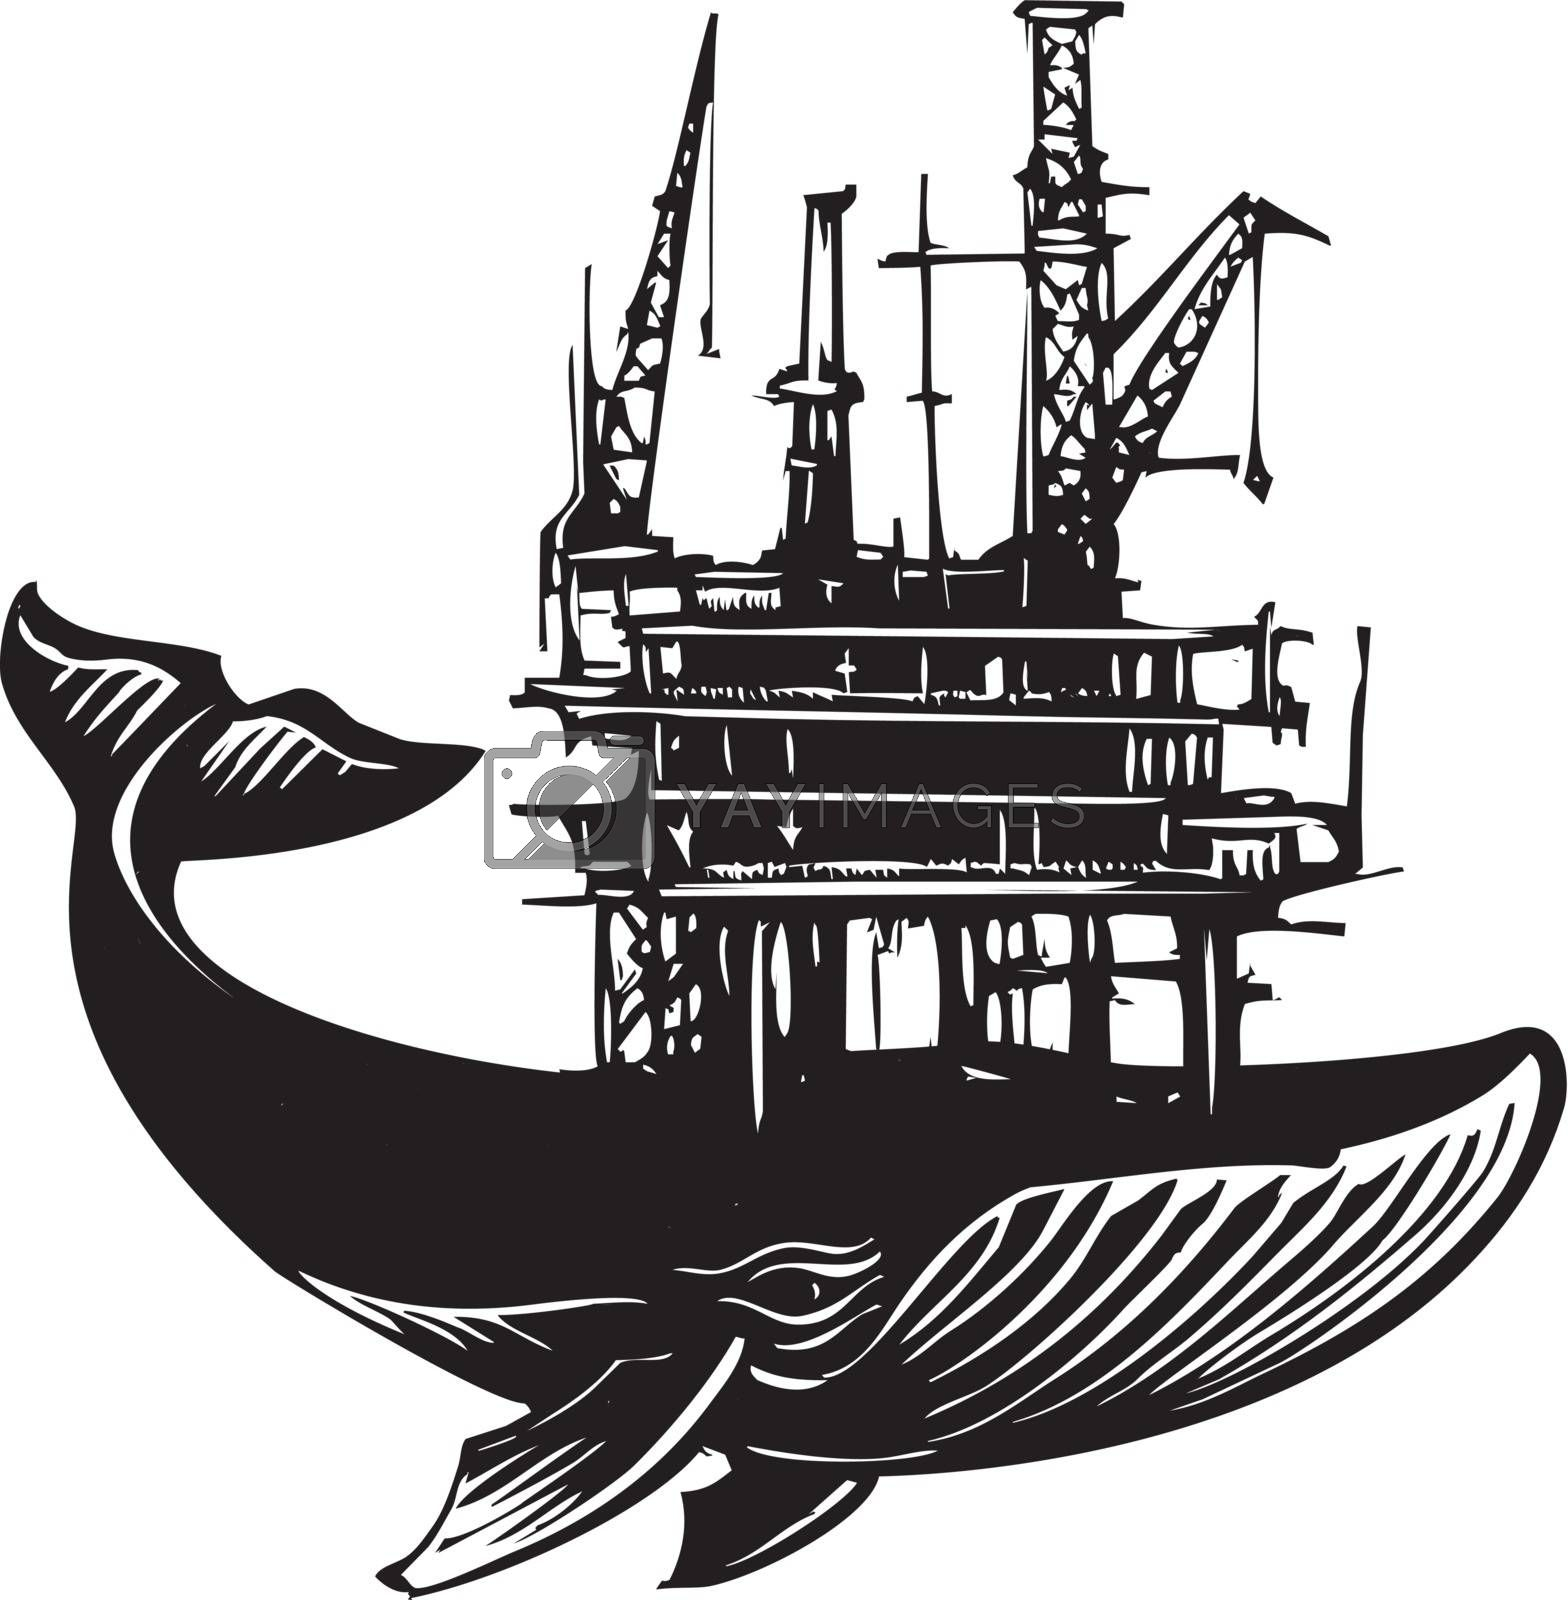 Woodcut style image of a whale with an Off Shore Oil Rig on its back.